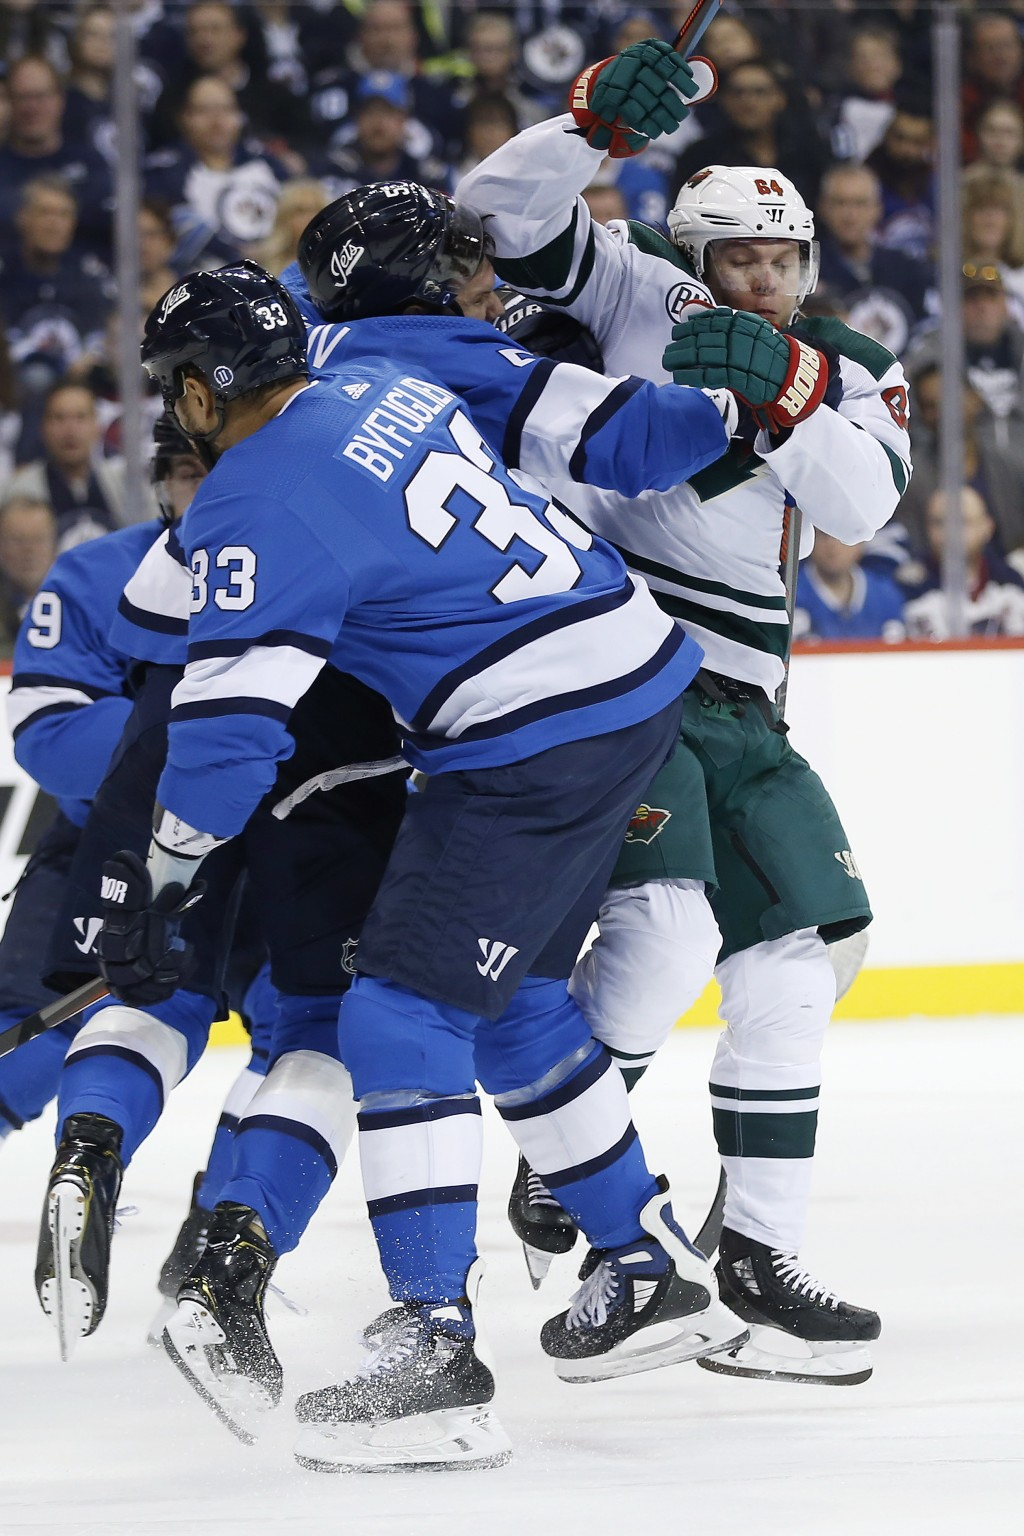 Winnipeg Jets' Dustin Byfuglien (33) and Dmitry Kulikov (5) defend against Minnesota Wild's Mikael Granlund (64) during first period NHL action in Win...